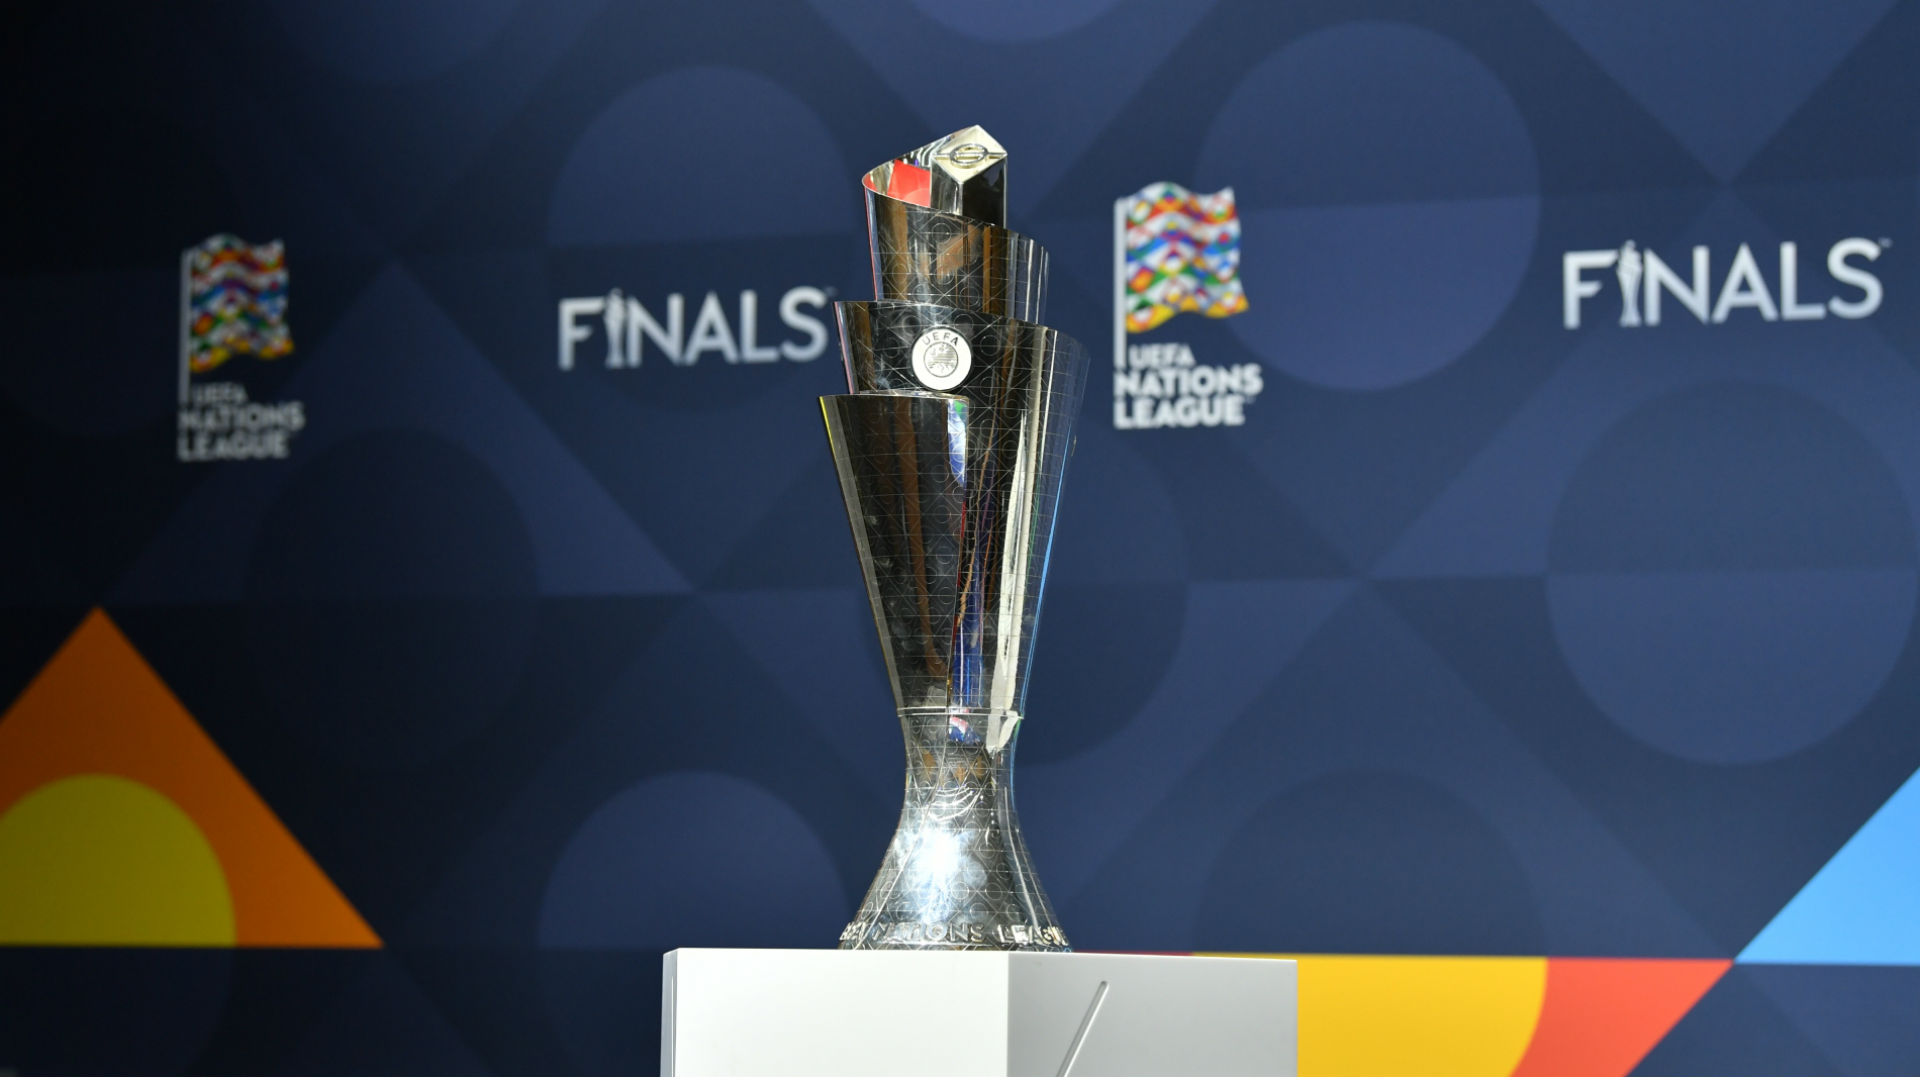 World Cup holders France draw Belgium, Italy to face Spain in Nations League semi-finals